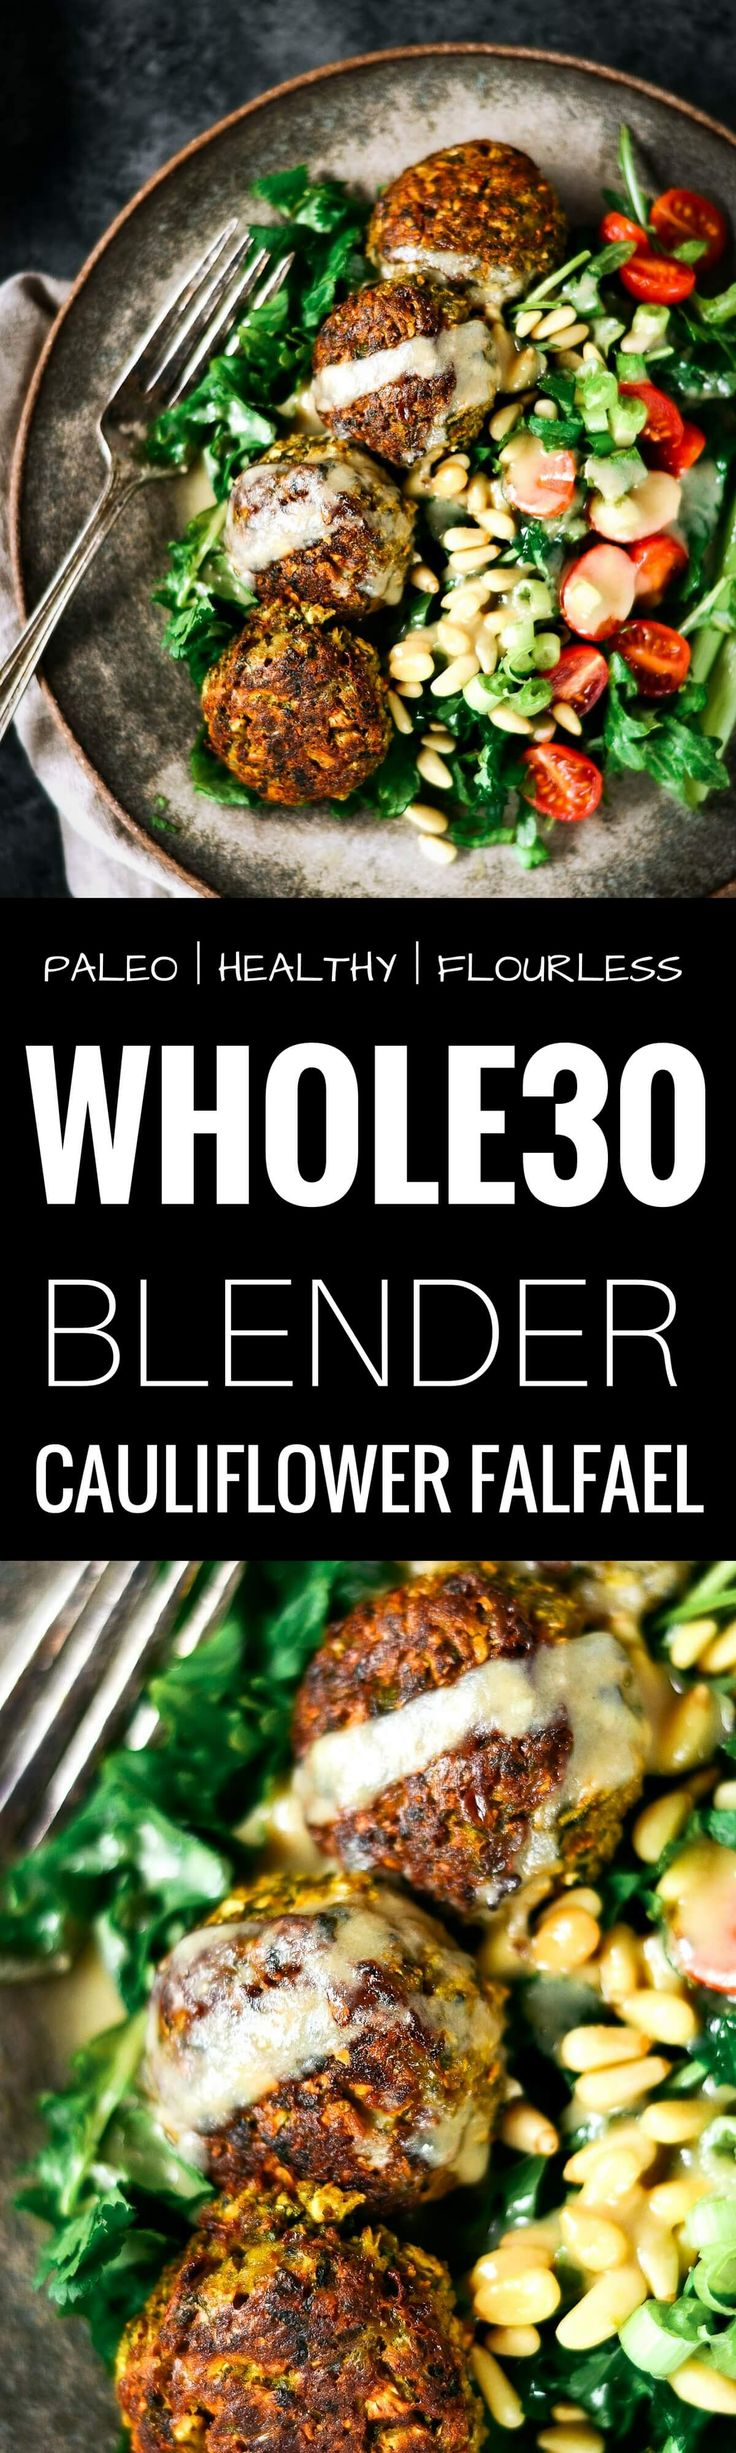 These warm flavorful falafels are better than the real deal! Packed with cauliflower and fresh herbs! A low carb delicious whole30 meal that is easily made in a blender. Easy baked falafel recipe. Best paleo falafel recipes. Falafel sauce. Healthy falafel. Easy whole30 cauliflower falafel. Made in 15 minutes! Paleo, healthy, and easy to make! Easy whole30 dinner recipes. Whole30 recipes. Whole30 lunch. Whole30 recipes just for you. Whole30 meal planning. Whole30 meal prep. Healthy paleo…